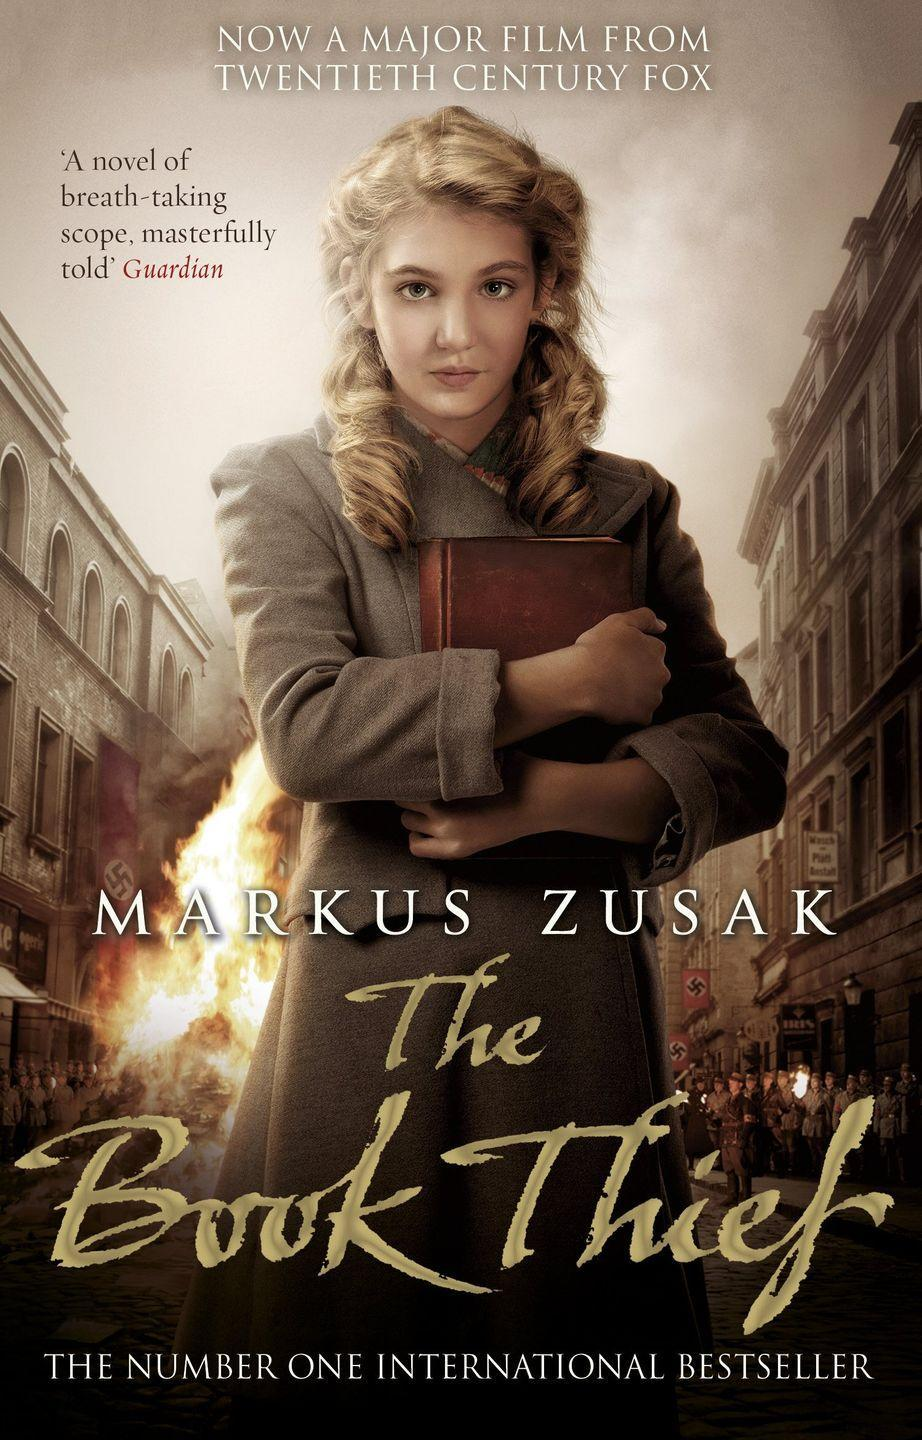 "<p>Liesel's life changes when she picks up a book partially hidden by her brother's grave. It is The Gravedigger's Handbook, left by accident, and it is her first act of book thievery. Soon she is stealing books from Nazi book-burnings, the mayor's wife's library, wherever there are books to be found.<br></p><p><a class=""link rapid-noclick-resp"" href=""https://www.amazon.co.uk/Book-Thief-Markus-Zusak/dp/0552779733/ref=sr_1_1?dchild=1&keywords=the+book+thief&qid=1586961393&sr=8-1&tag=hearstuk-yahoo-21&ascsubtag=%5Bartid%7C1921.g.32141605%5Bsrc%7Cyahoo-uk"" rel=""nofollow noopener"" target=""_blank"" data-ylk=""slk:SHOP NOW"">SHOP NOW</a></p>"